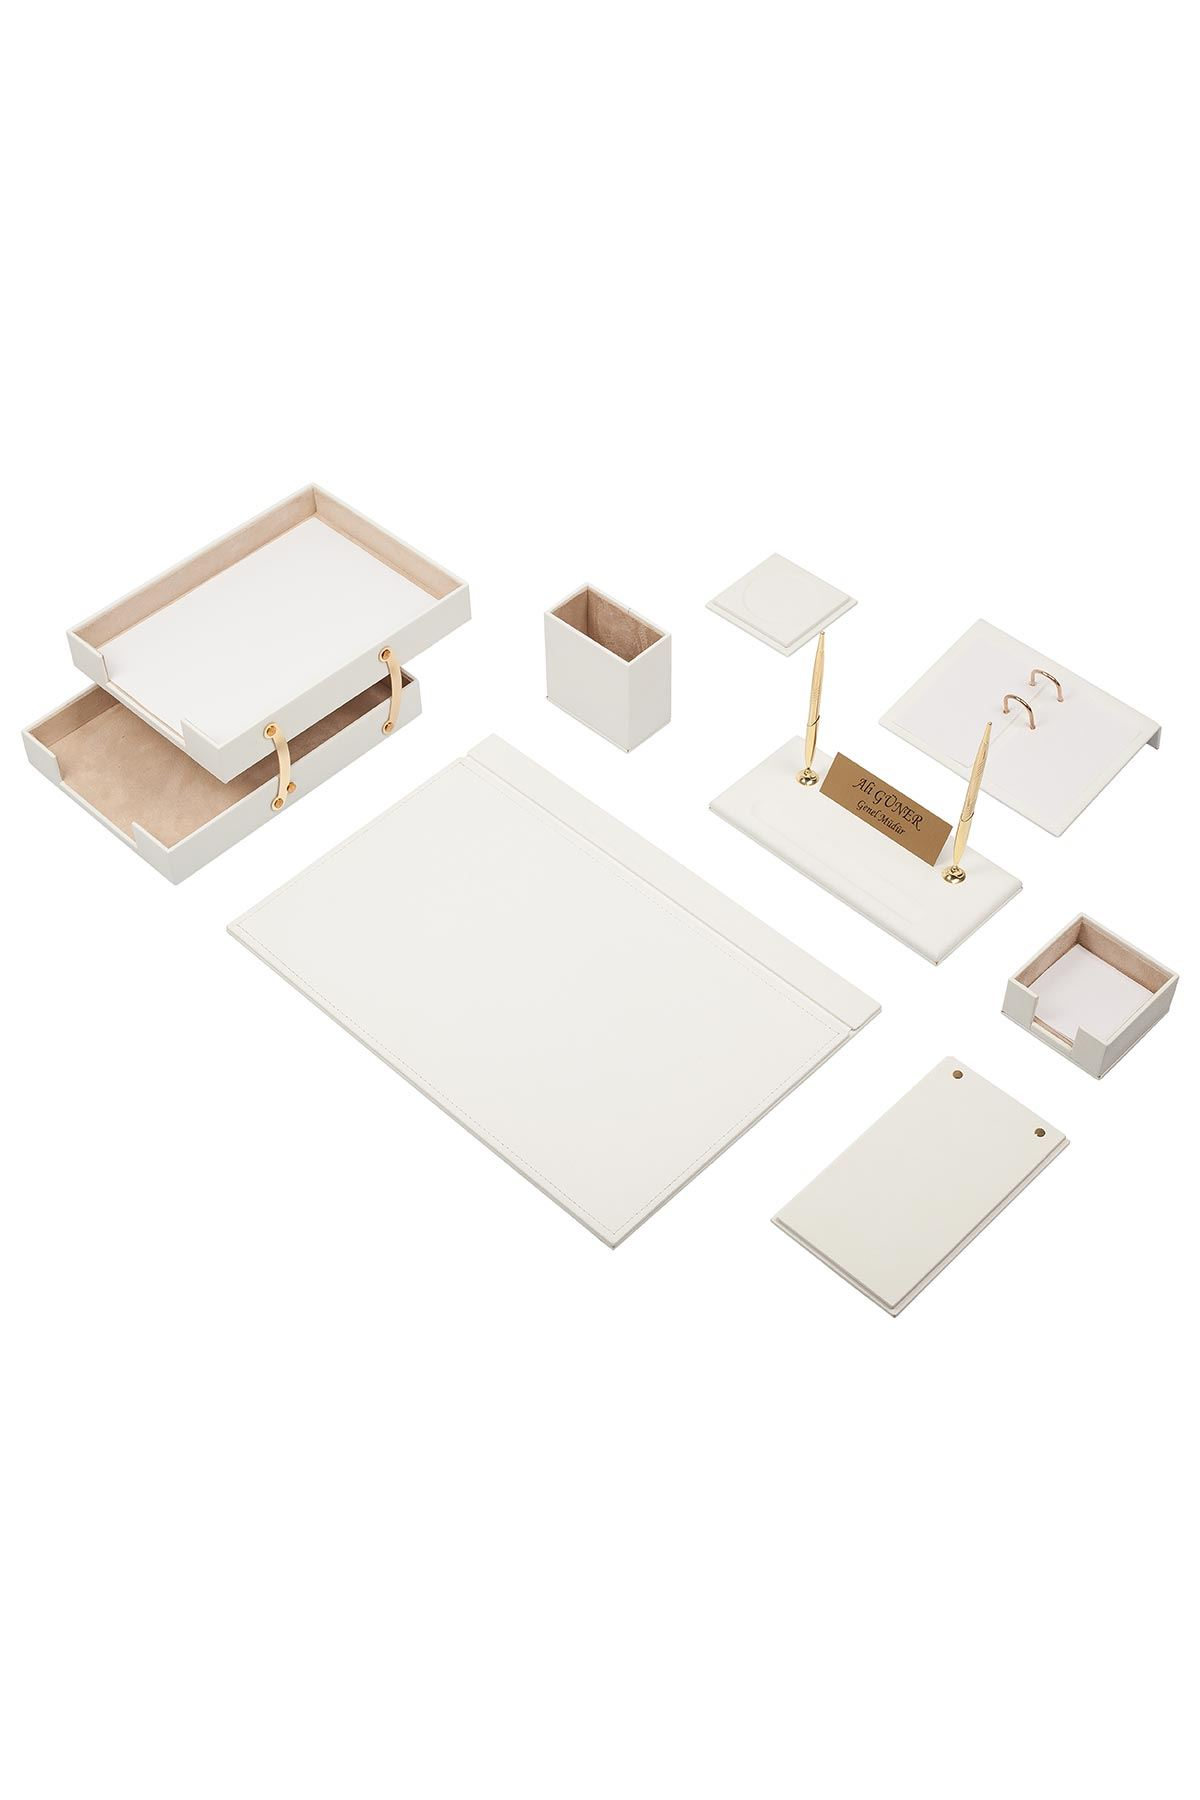 Luxury Leather Desk Set White 10 Accessories - Double Document Tray